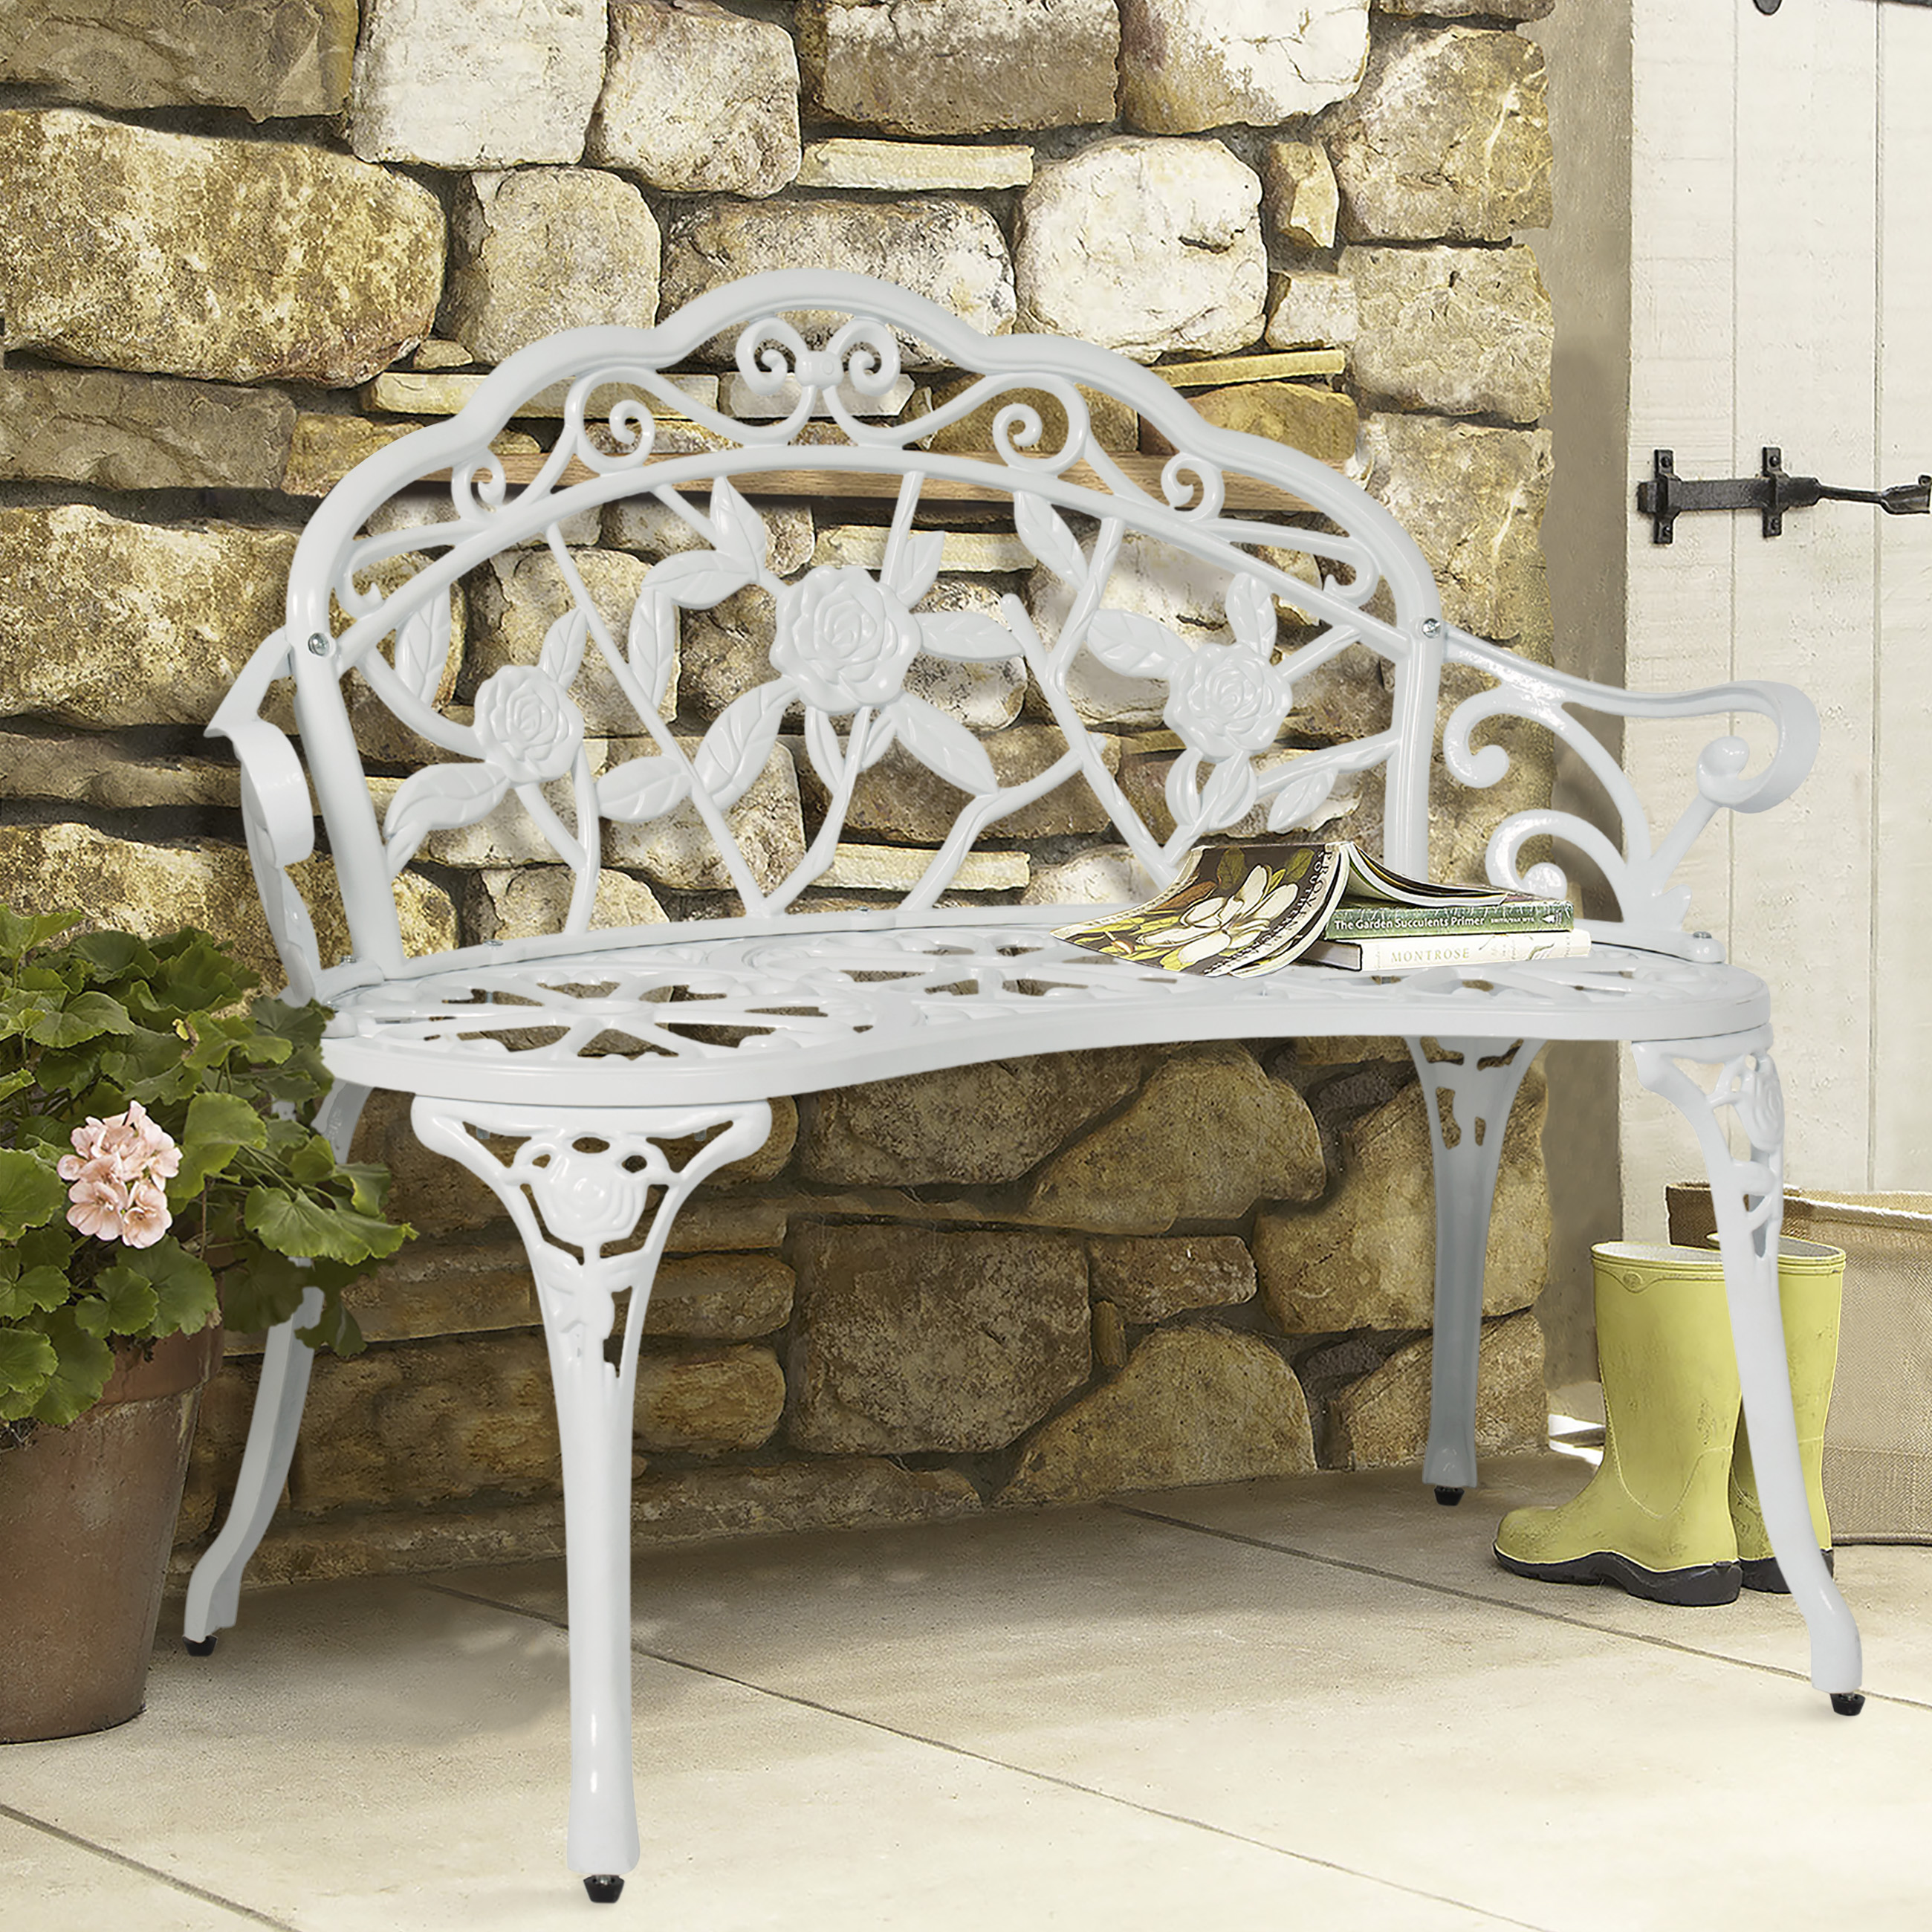 Best Choice Products Floral Rose Accented Metal Garden Patio Bench w/ Antique Finish - White